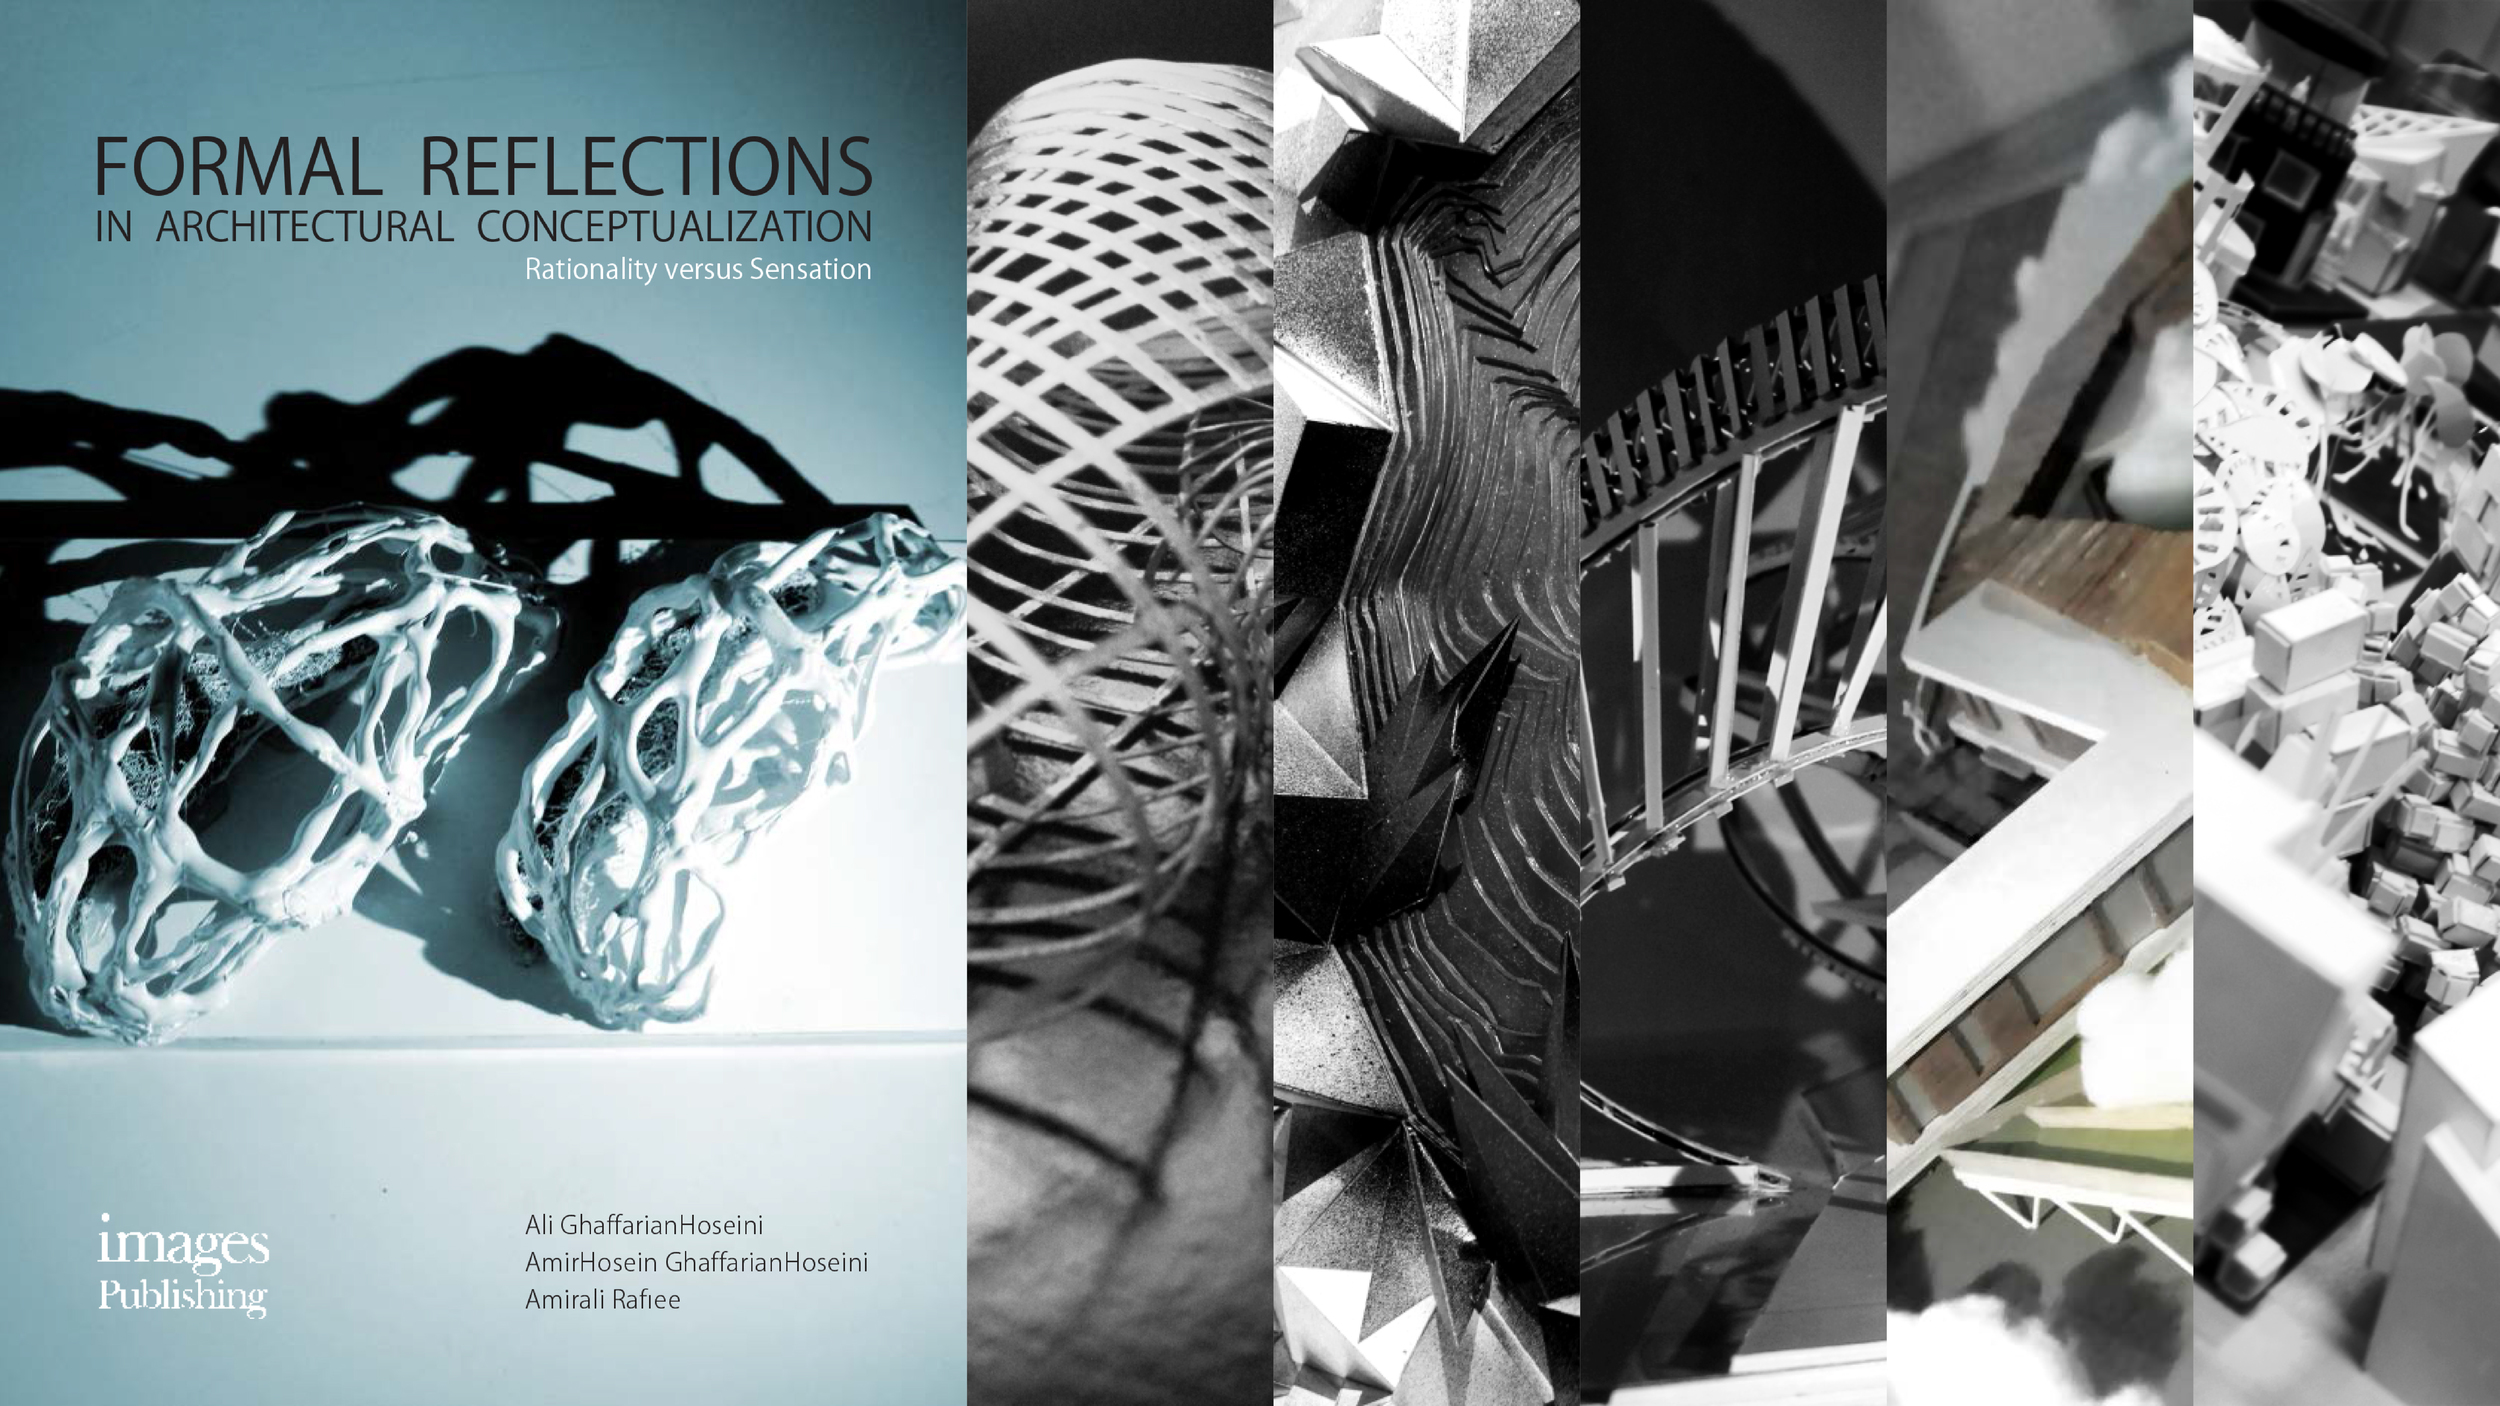 Formal Reflections   in Architectural Conceptualization  Rationality v Sensation    This title embraces philosophical theories behind architect-designed conceptualization, and how the potential arises for the generation of further innovative  ideas  . Featuring chapters on Architectural Design as a Way of Thinking, Conceptualization, Design Progression, Form, Function & Order: Conceptual Thinking, Conceptualization in the Design Process, Design Development and Space Crafting.      Images Publishing  / Google Books  / Google Play